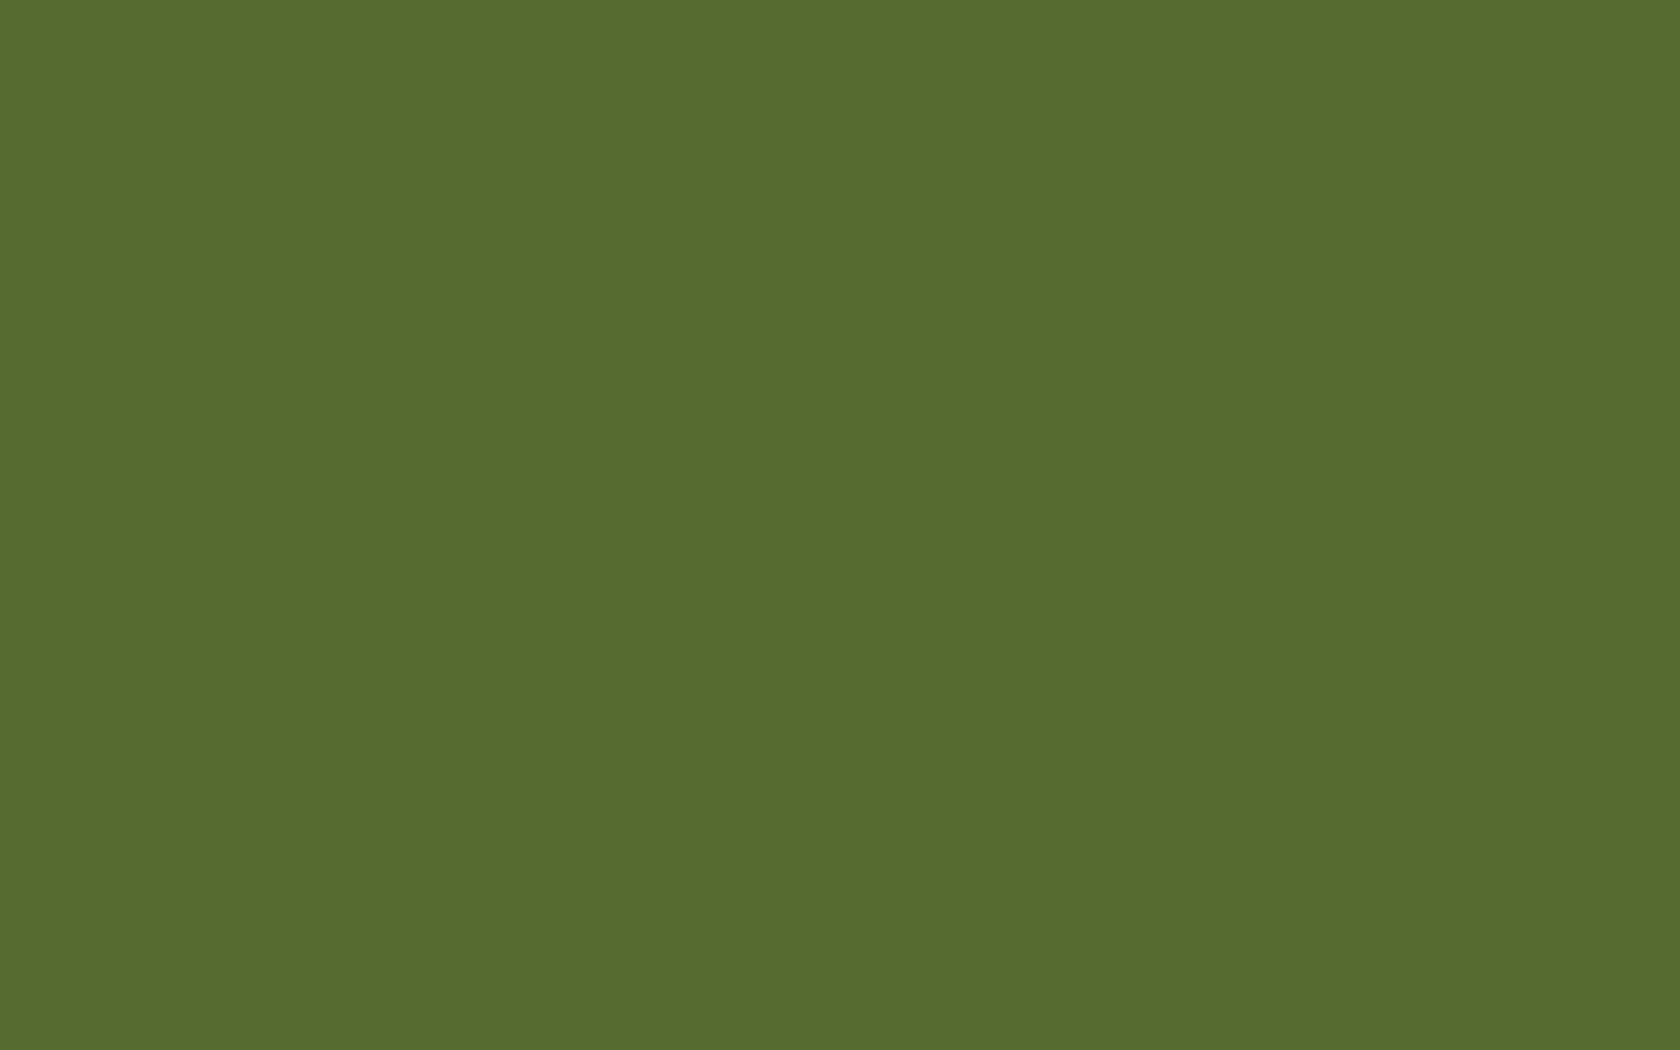 1680x1050 Dark Olive Green Solid Color Background